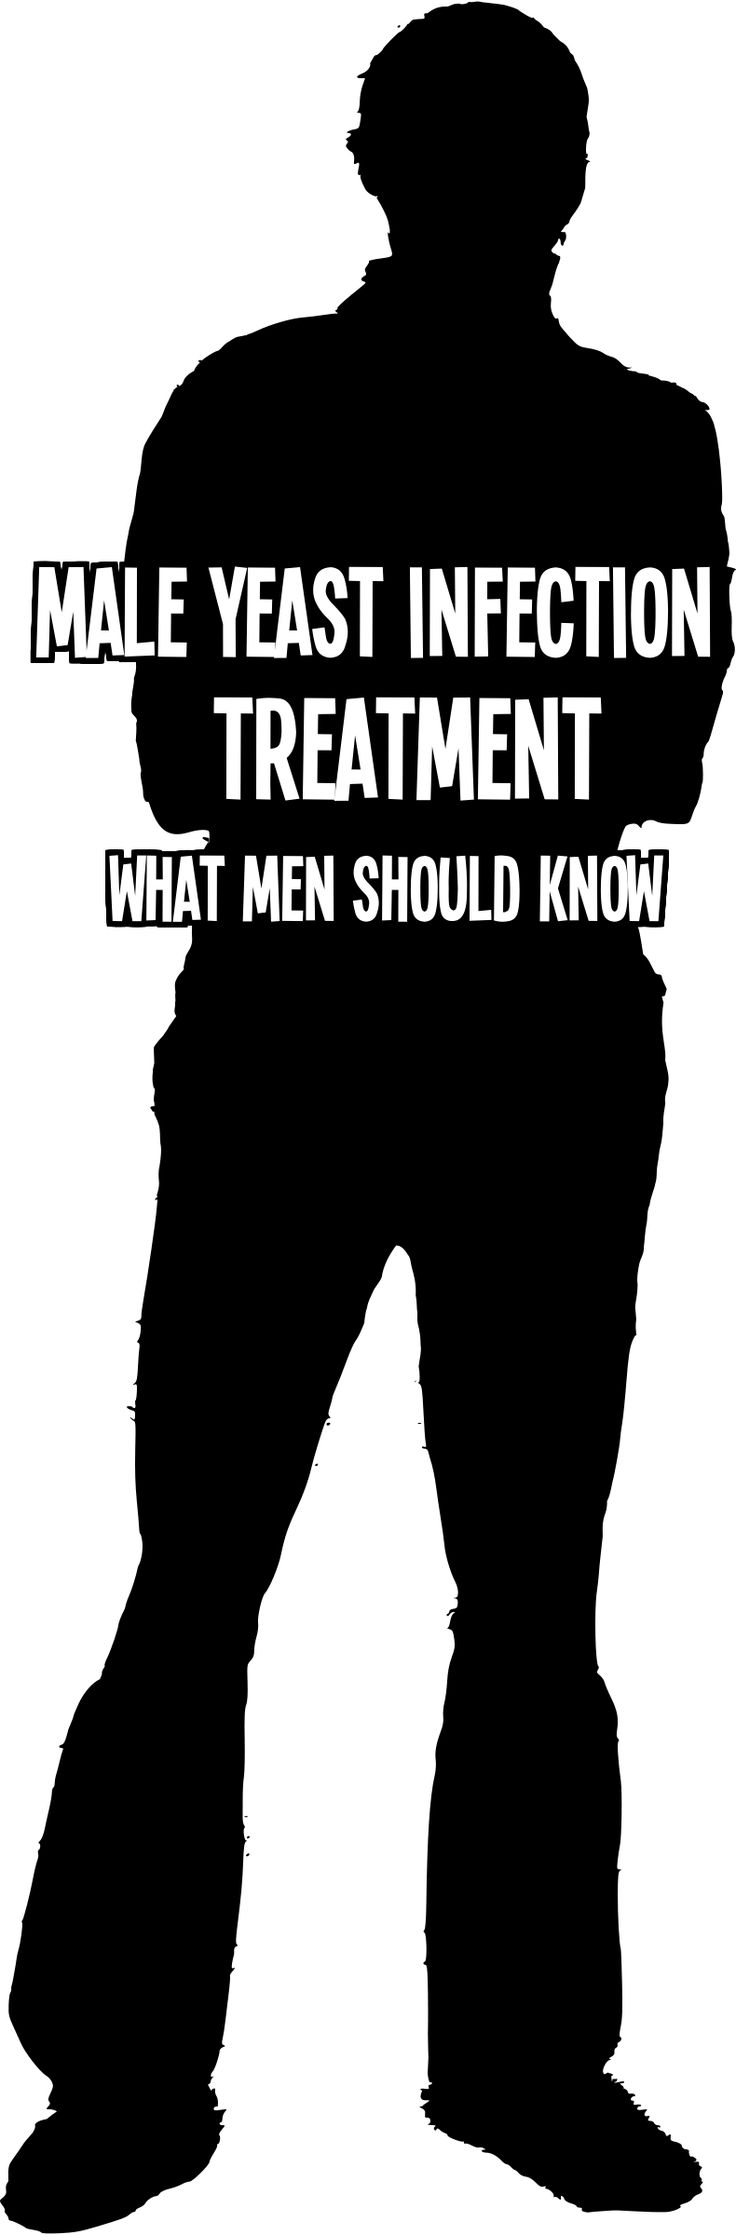 Male Yeast Infection Treatment – What Men Should Know >>> Although yeast infection is commonly associated with women, men are not spared because anyone can get the infection even men. The infection is caused by Candida fungus which normally thrives in moist areas of the body like the mouth and genitals. If you have the infection, you are probably looking for the best male yeast infection treatment that will work for you. #yeastinfection #maleyeastinfection #mensissues